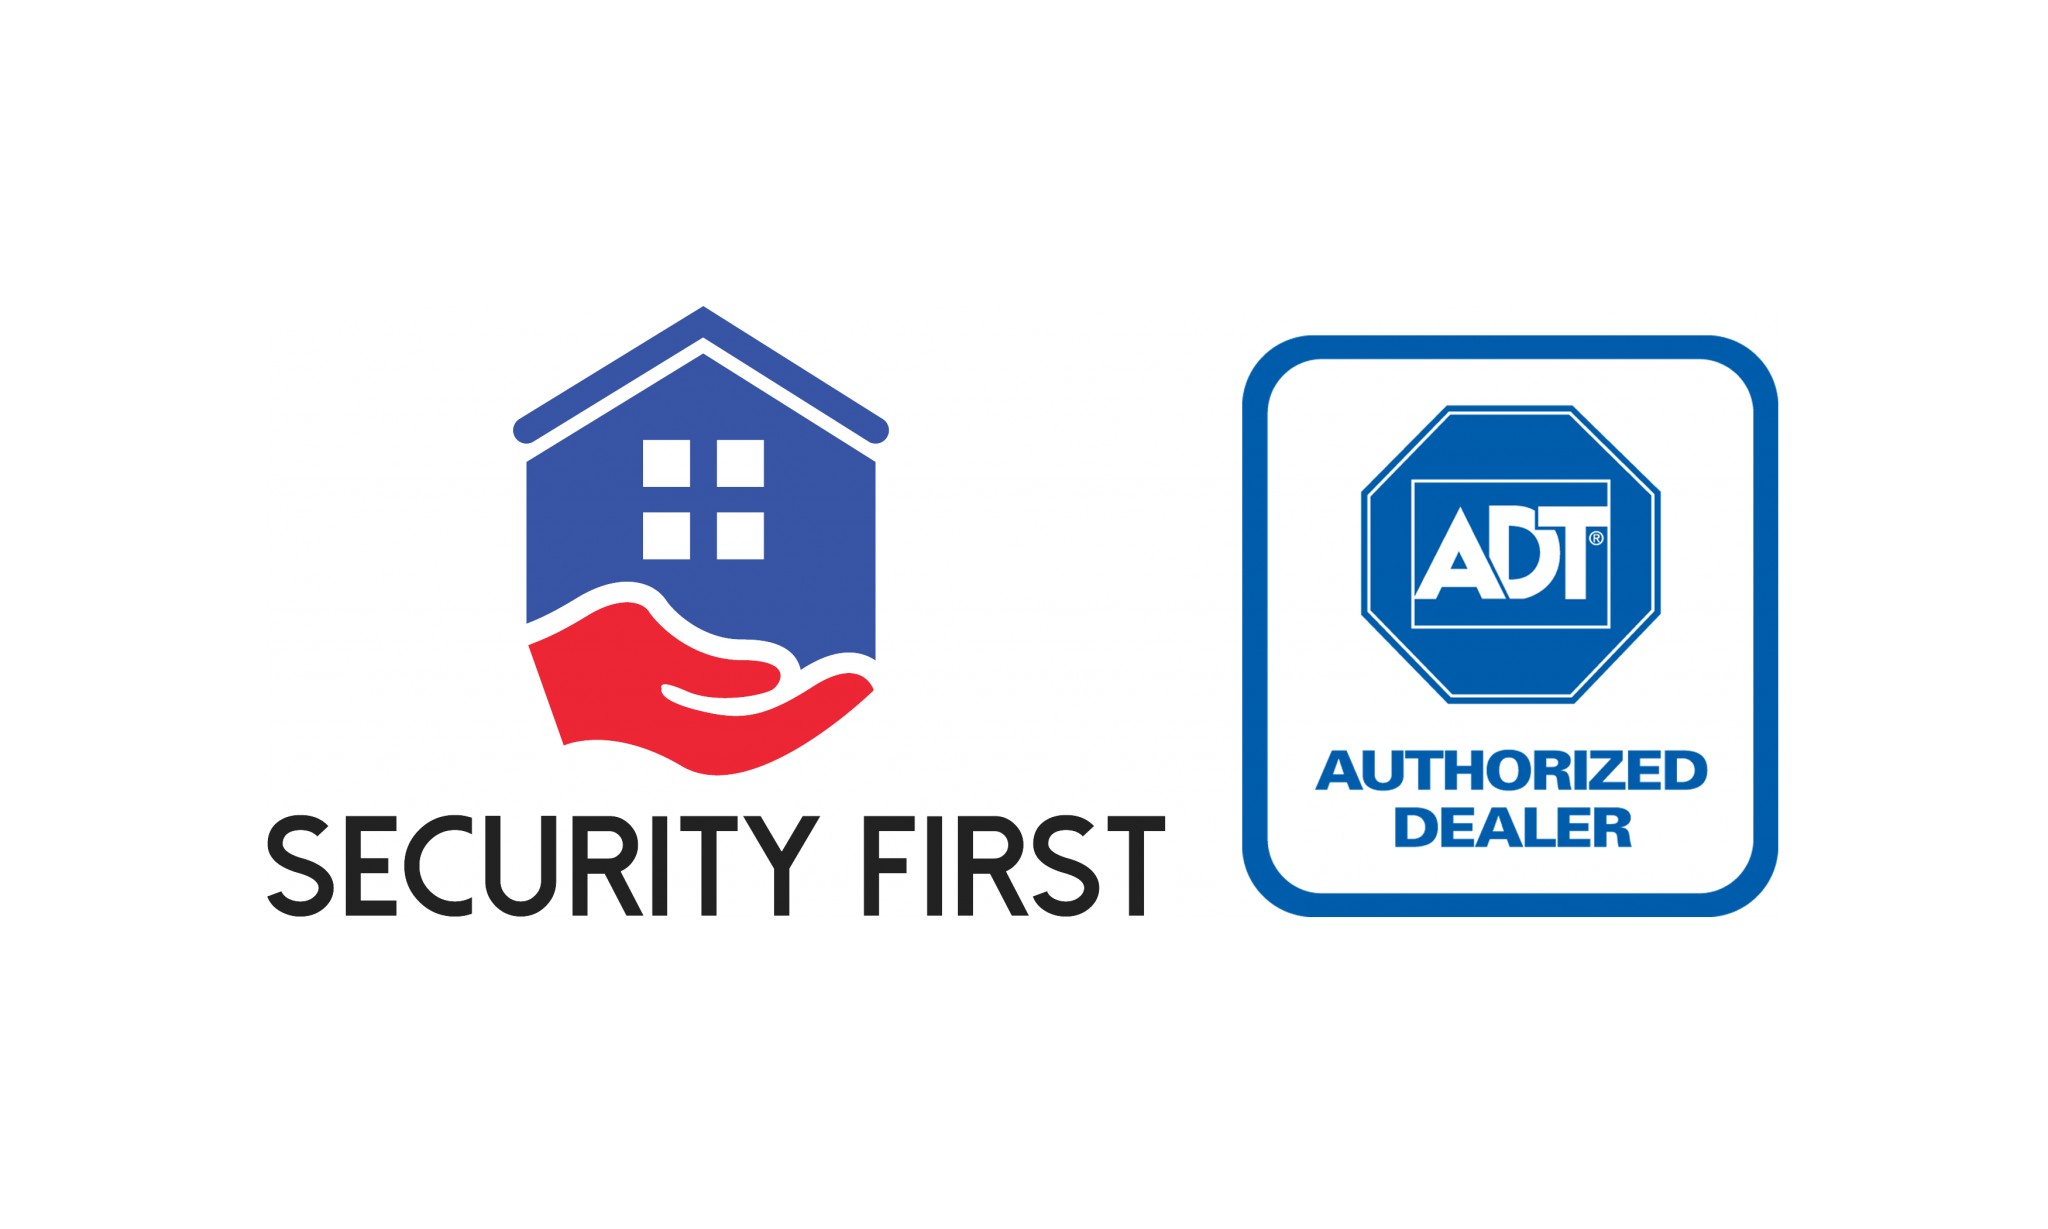 adt authorized dealer logo png #6803